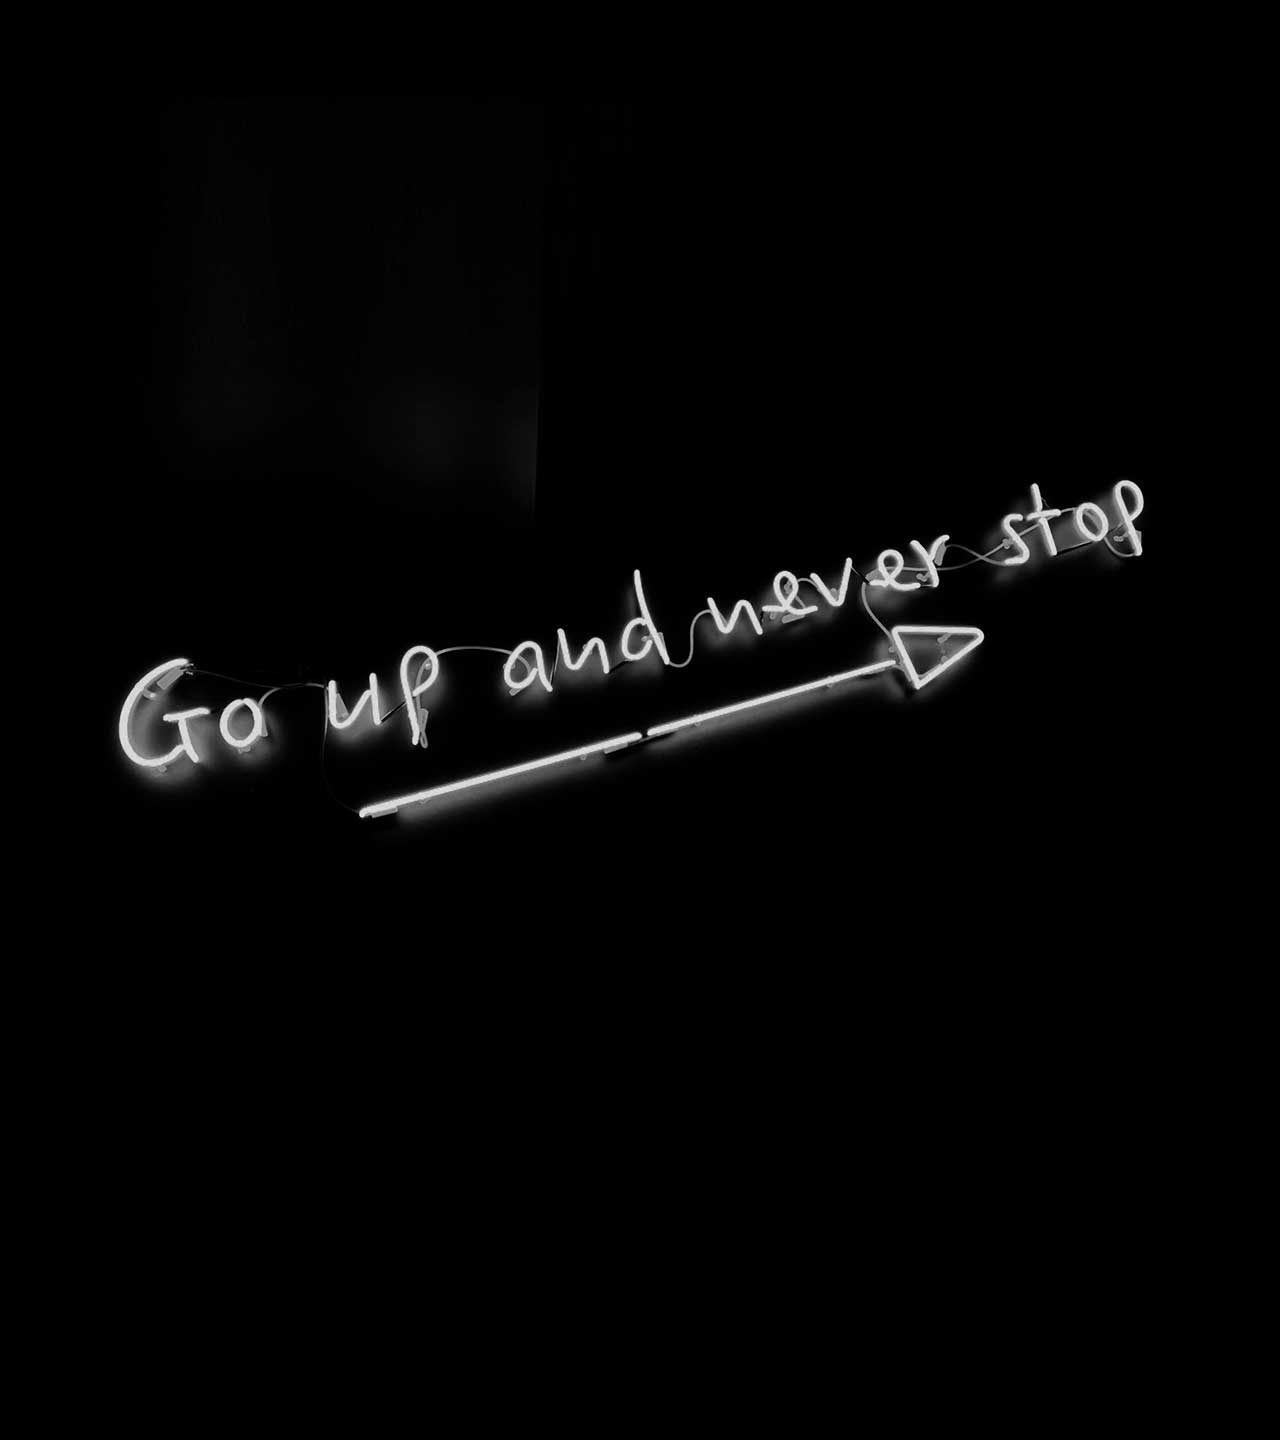 go up and never stop neon schild